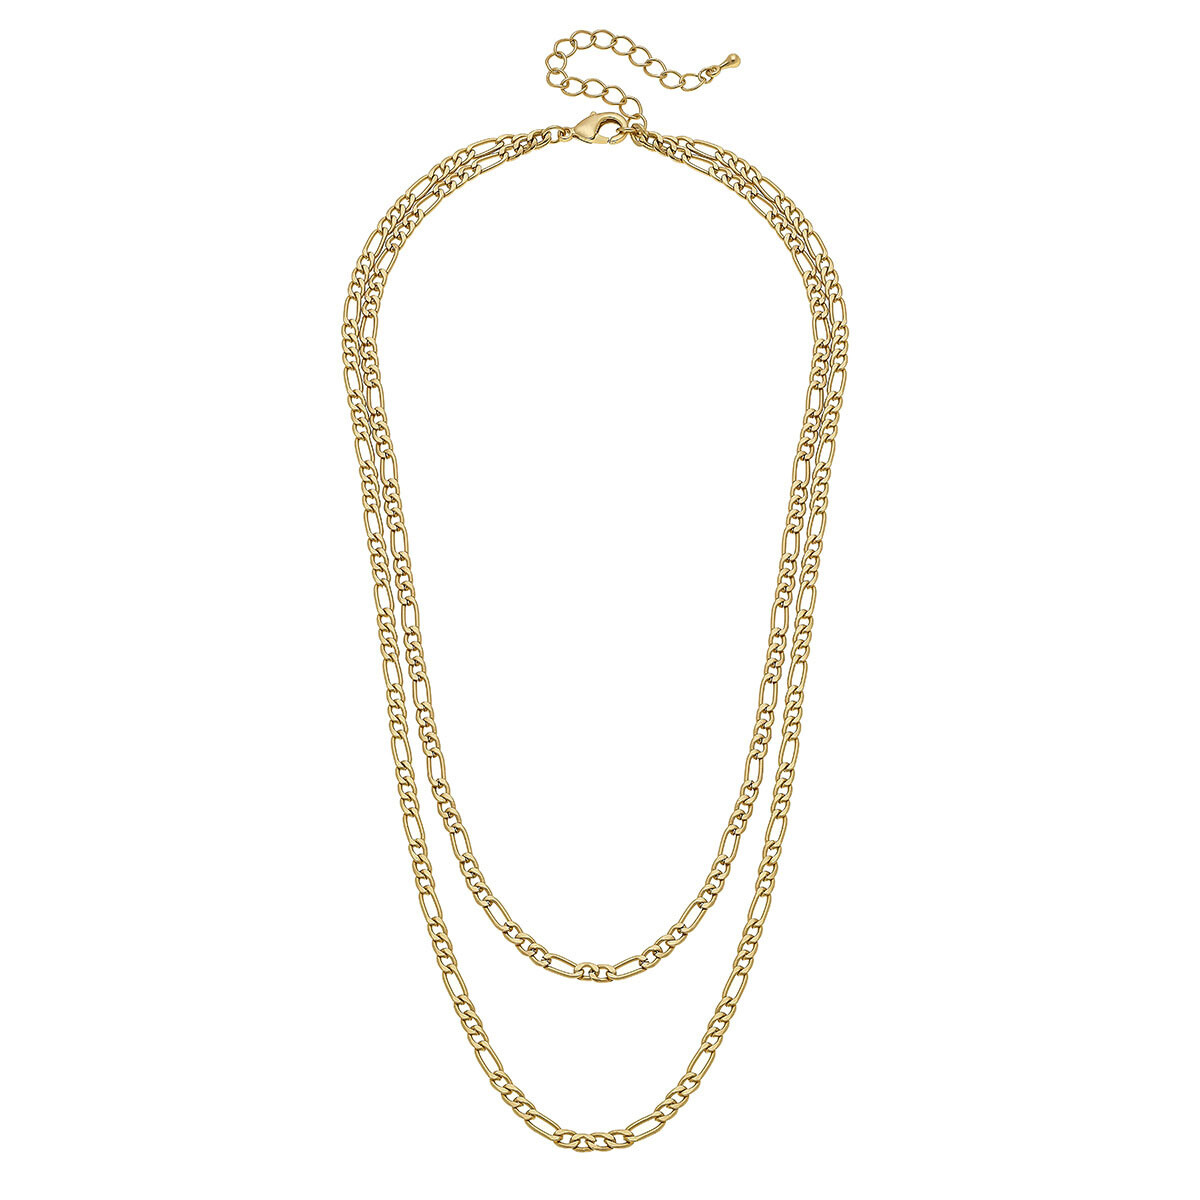 Caprice Layered Necklace